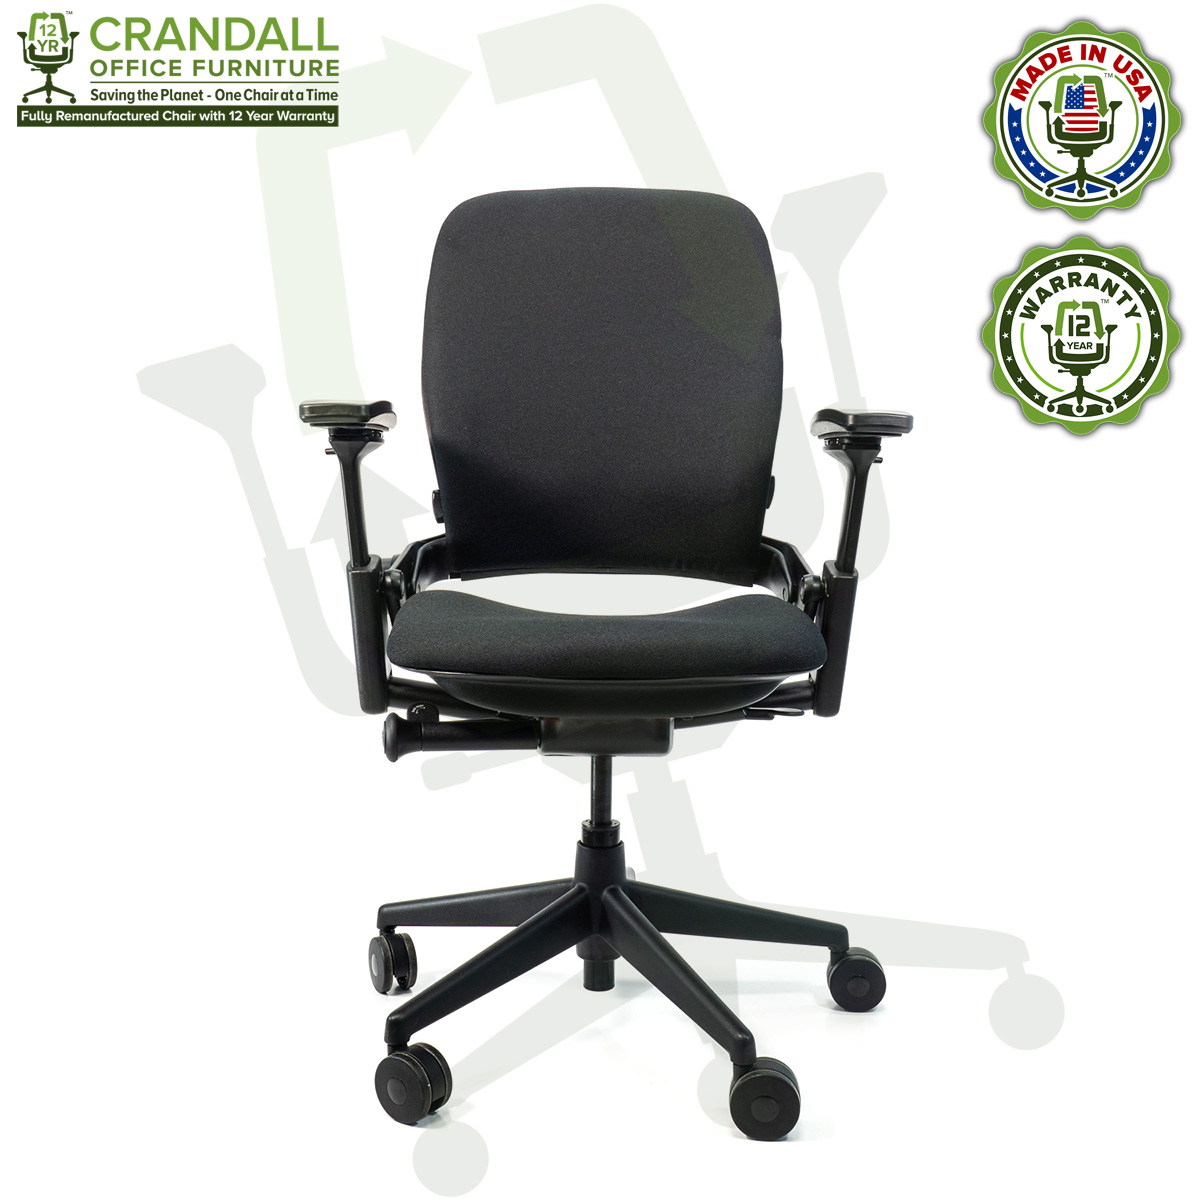 Remanufactured Steelcase 332 Leap V32 Office Chair - Crandall